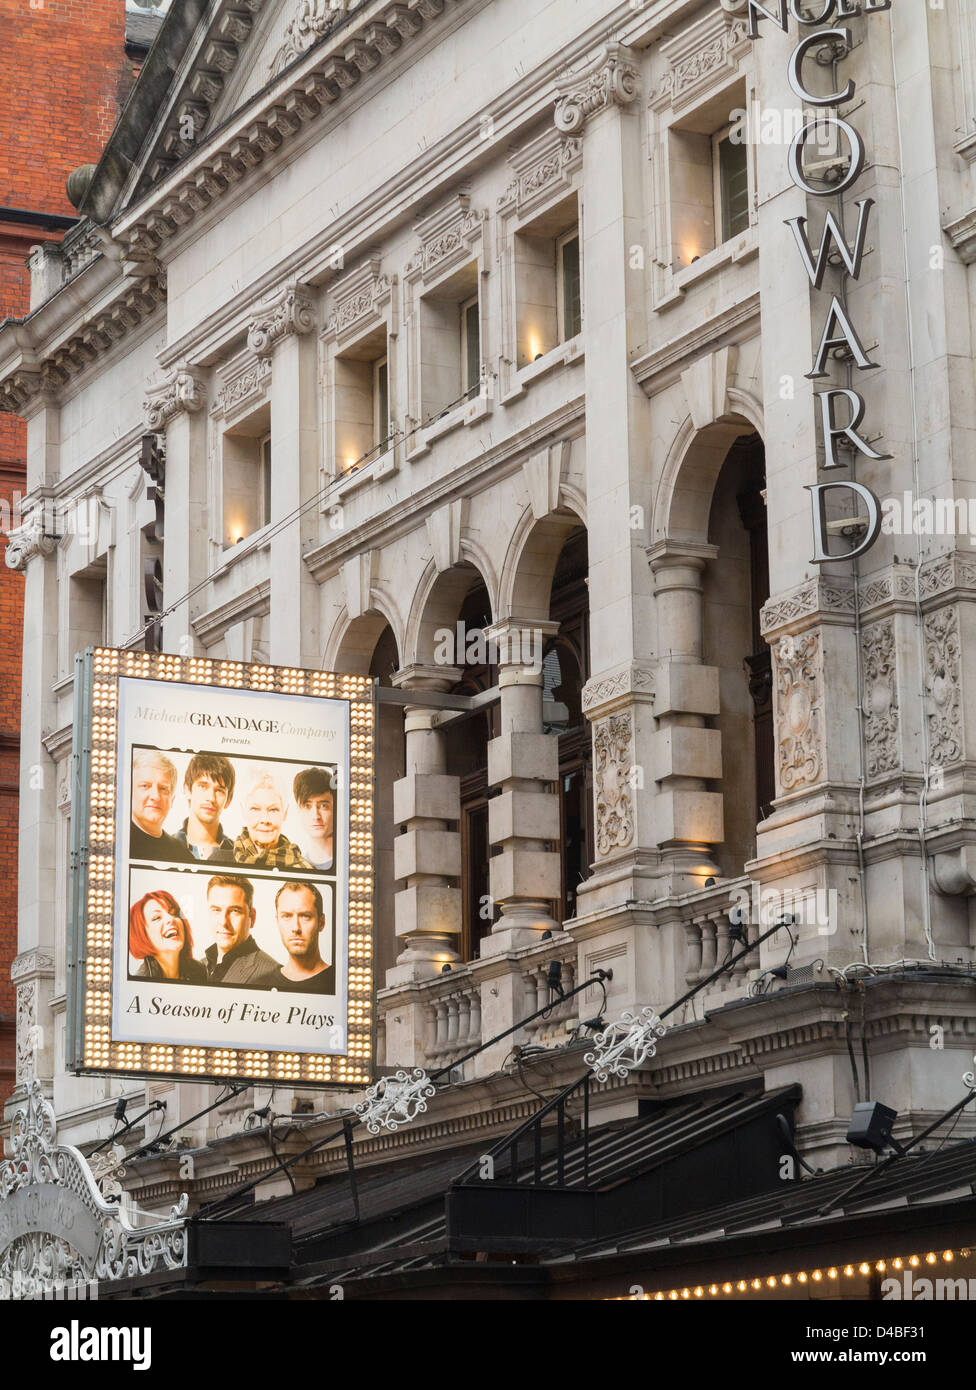 Noel Coward Theatre in St Martin's Lane, London, England - Stock Image